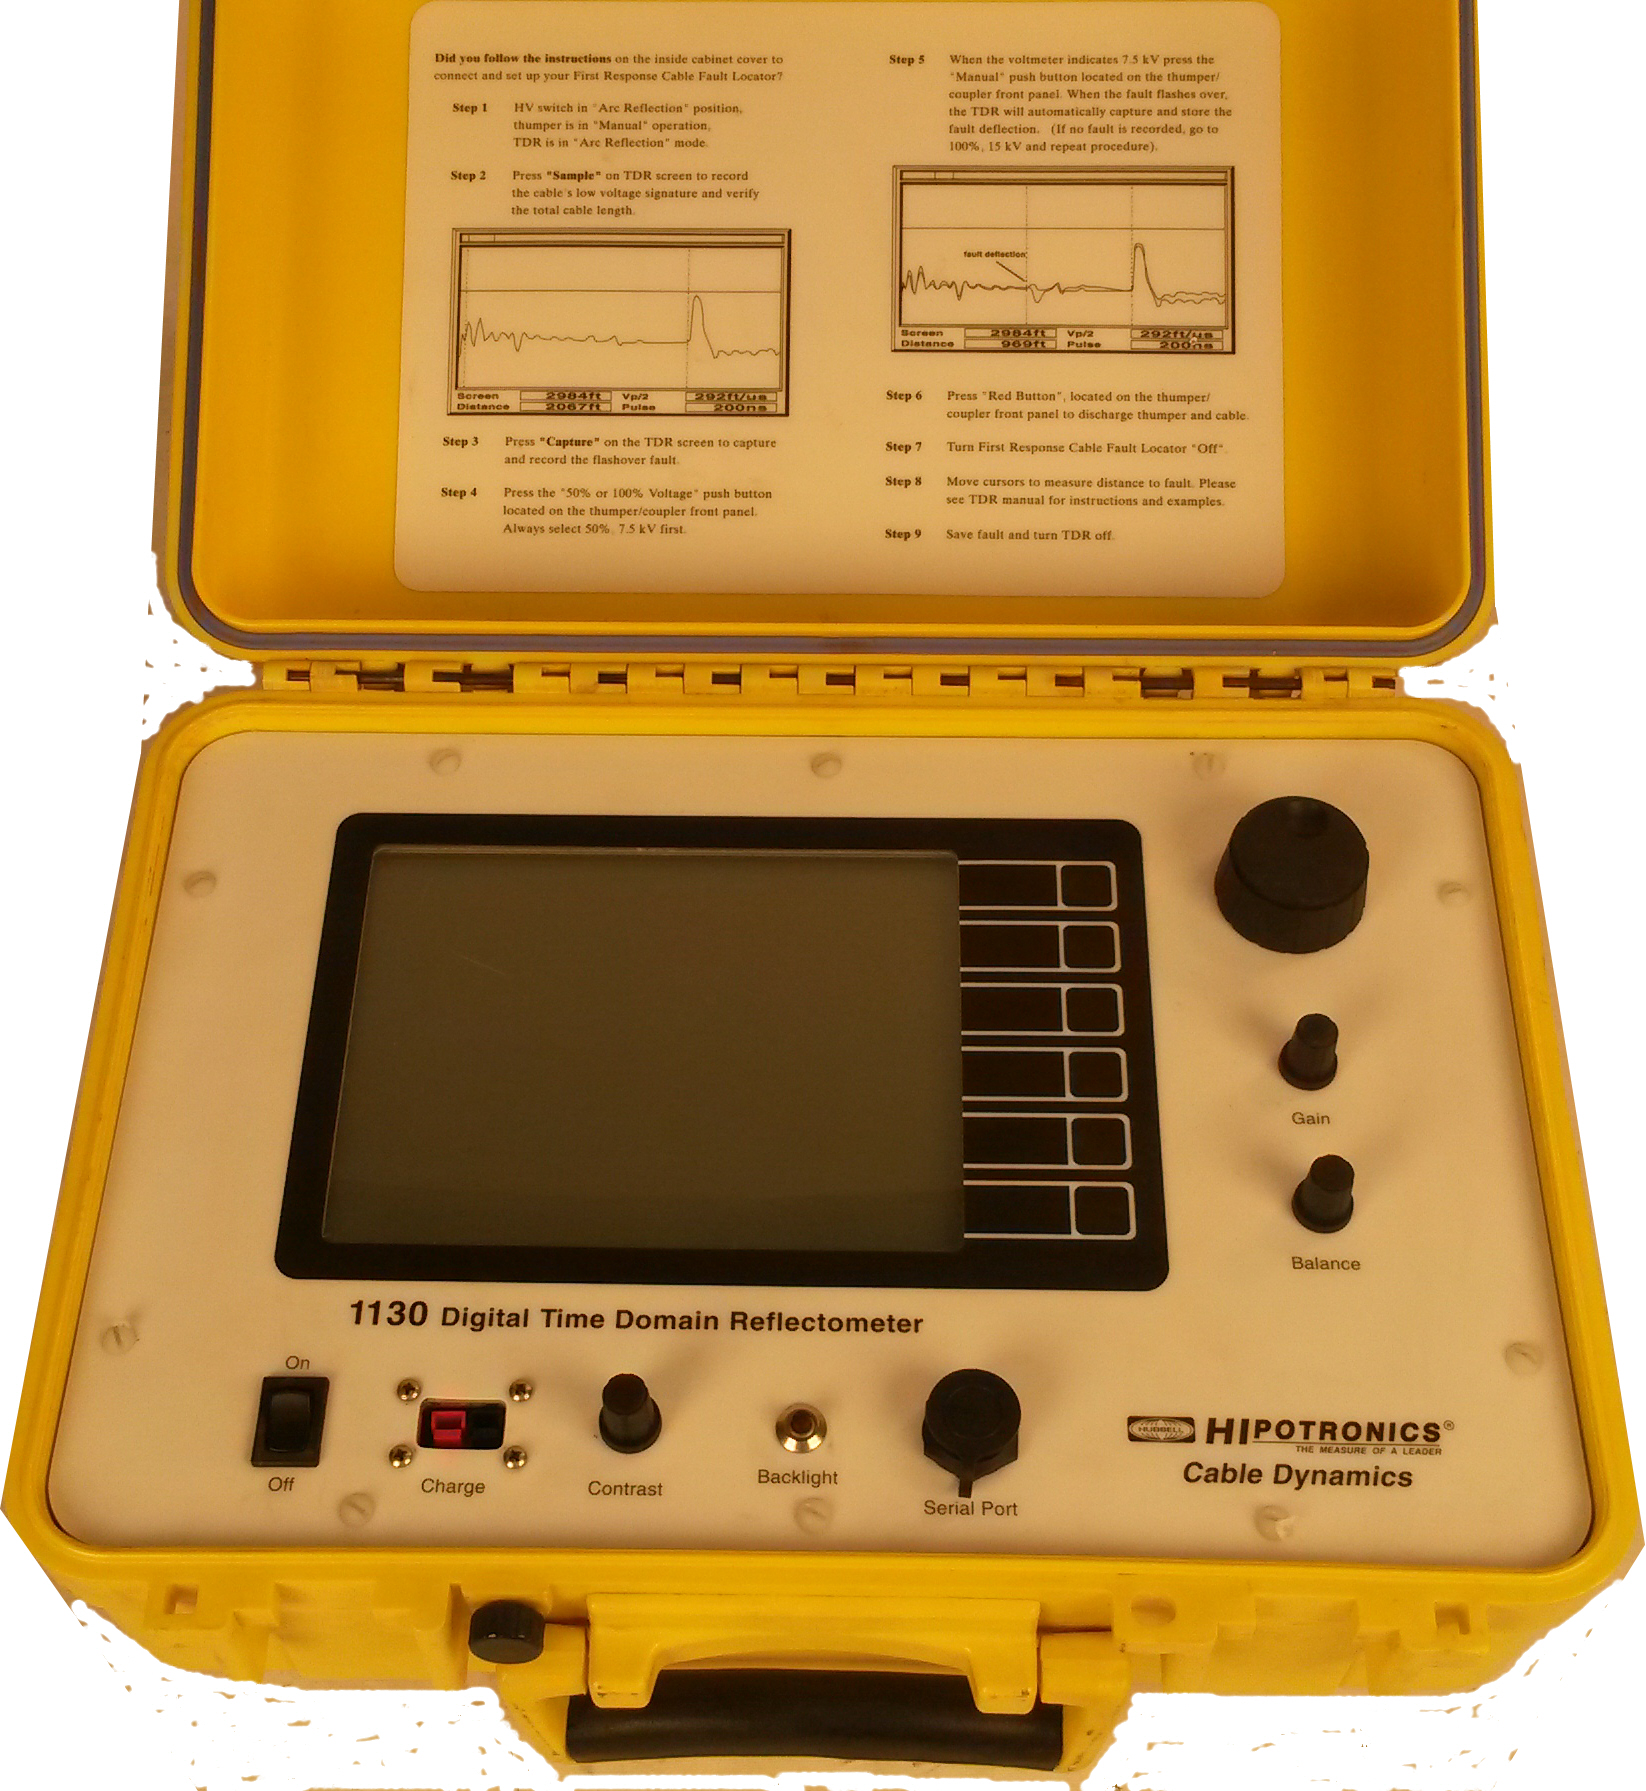 Hipotronics 1130 for sale